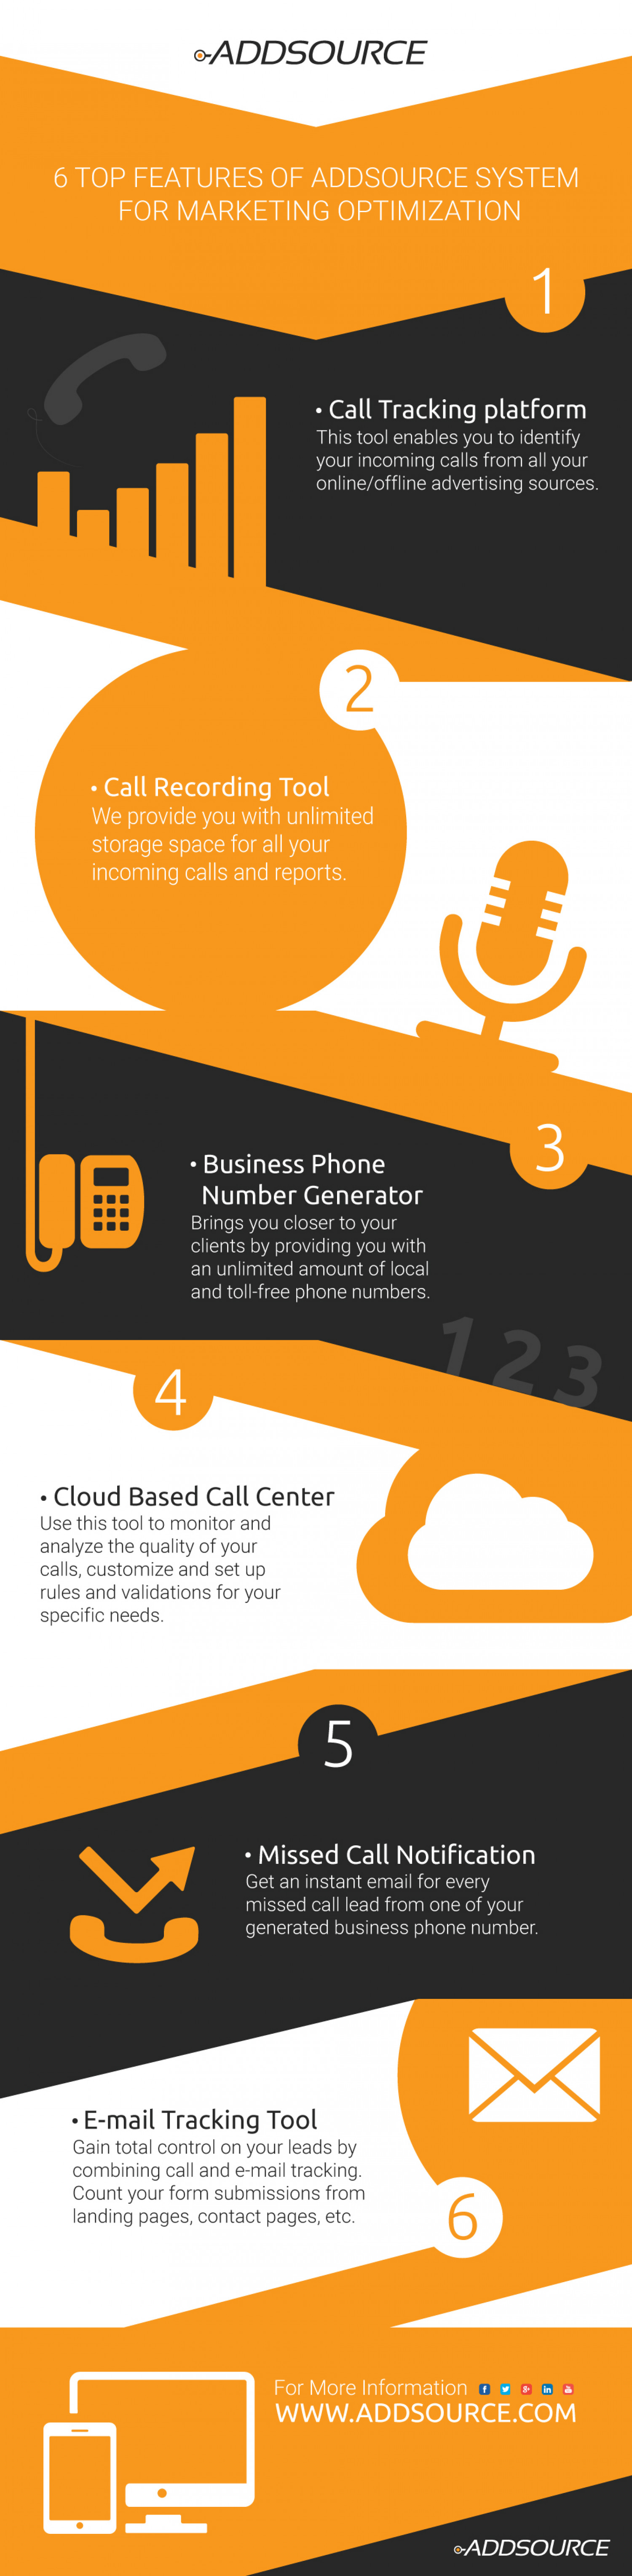 AddSource Call tracking platform features Infographic